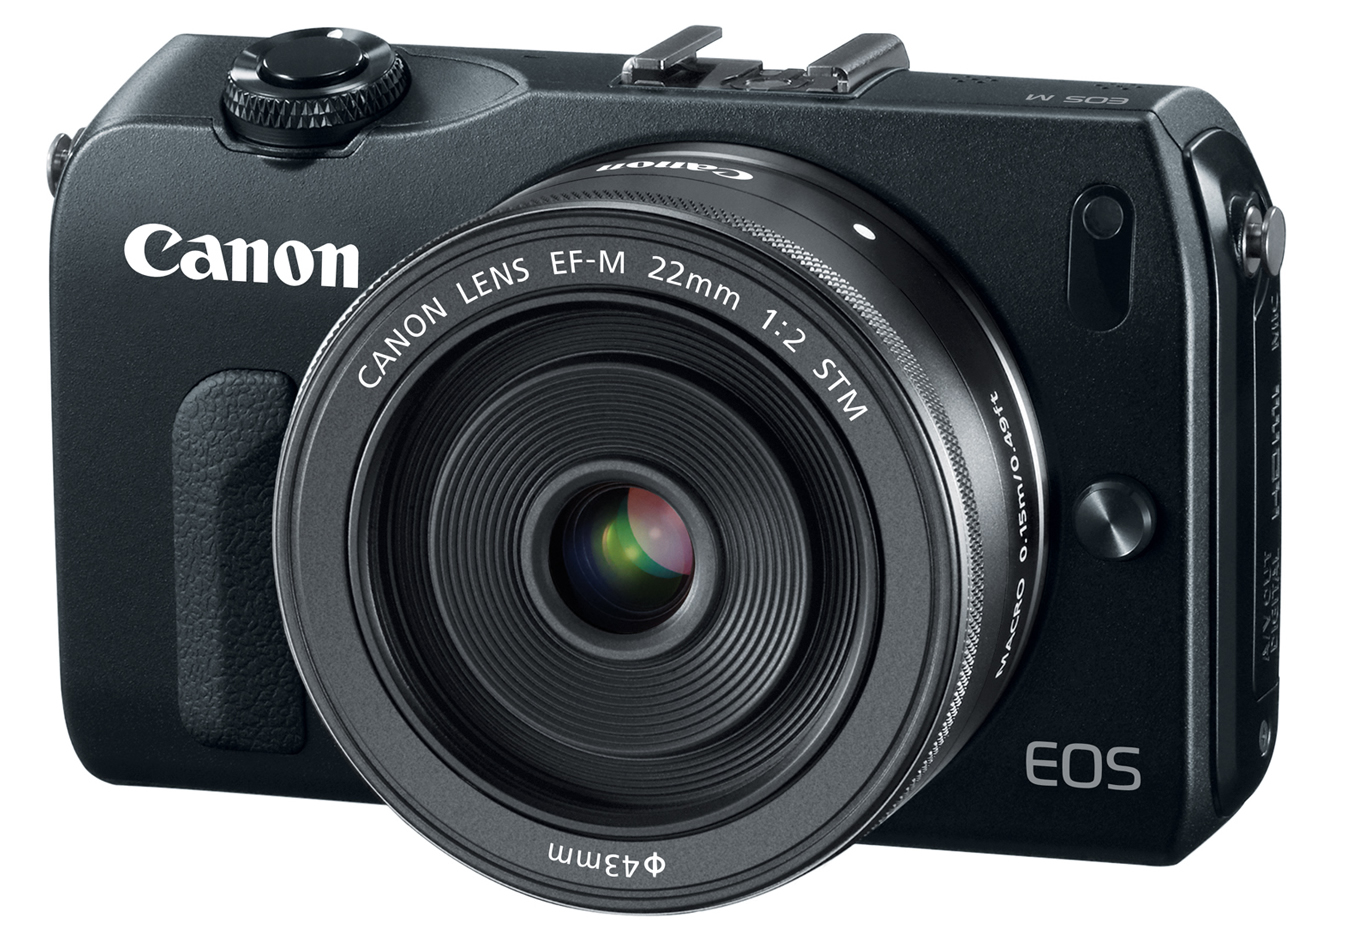 Canon EOS M Review: Overview - Steves Digicams